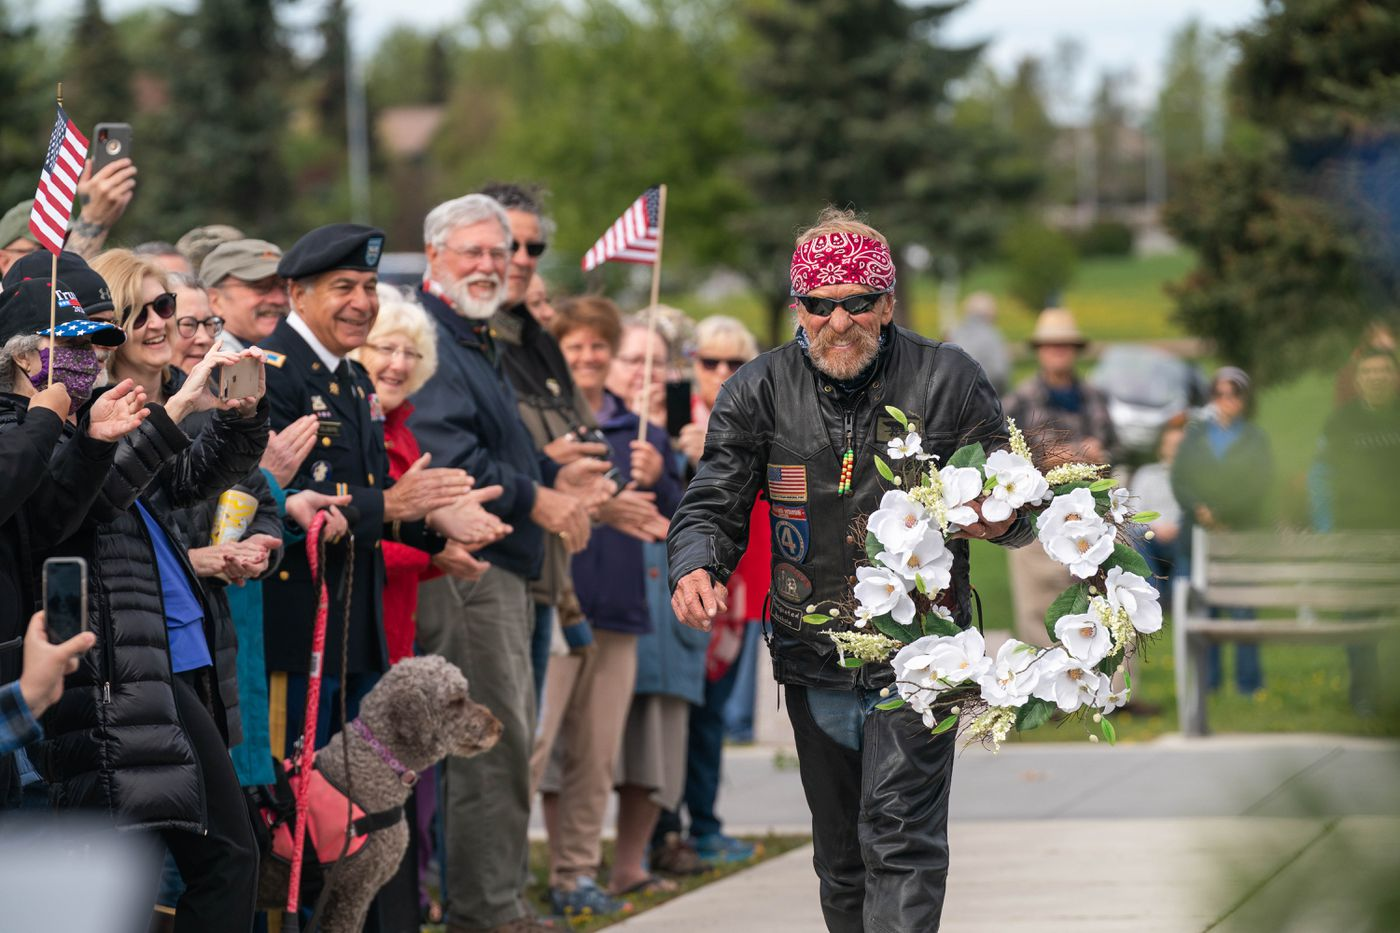 State Rep. Laddie Shaw, R-Anchorage, places a wreath at the Anchorage Veterans Memorial on Delaney Park Strip on Monday, May 25, 2020 during a Memorial Day observance. (Loren Holmes / ADN)